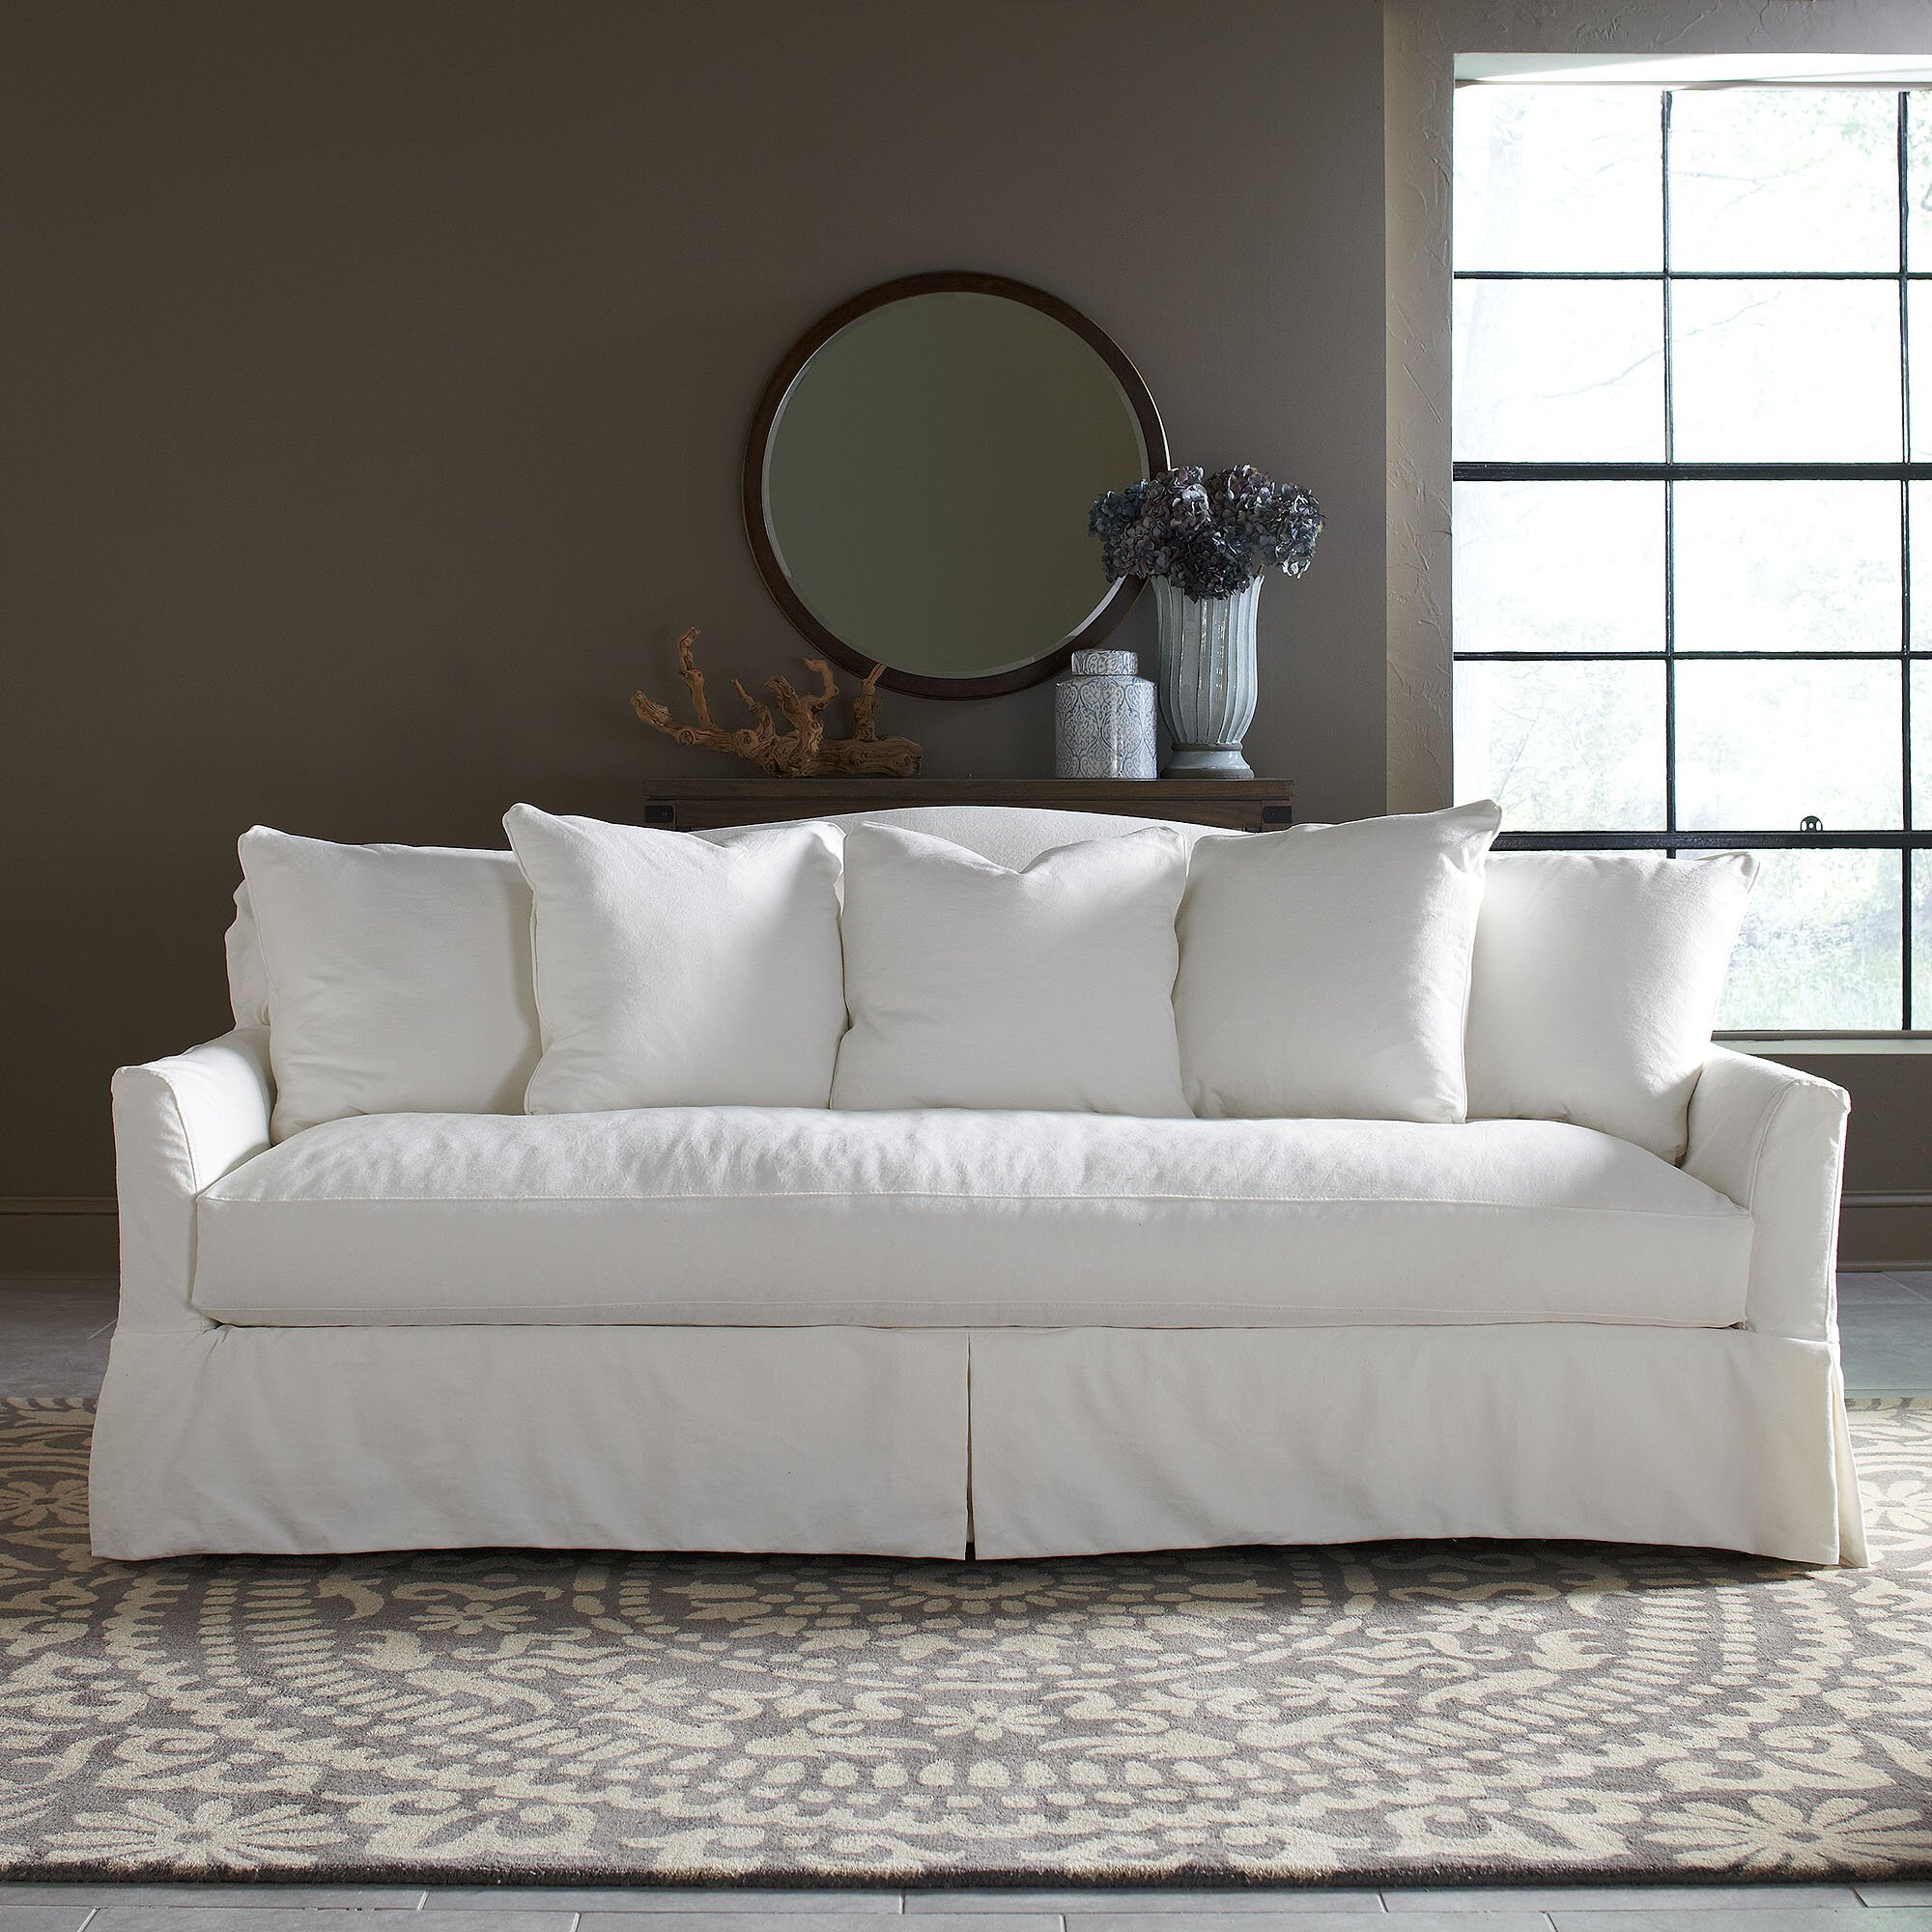 Birch Lane Fairchild Slipcovered Sofa Reviews Wayfair